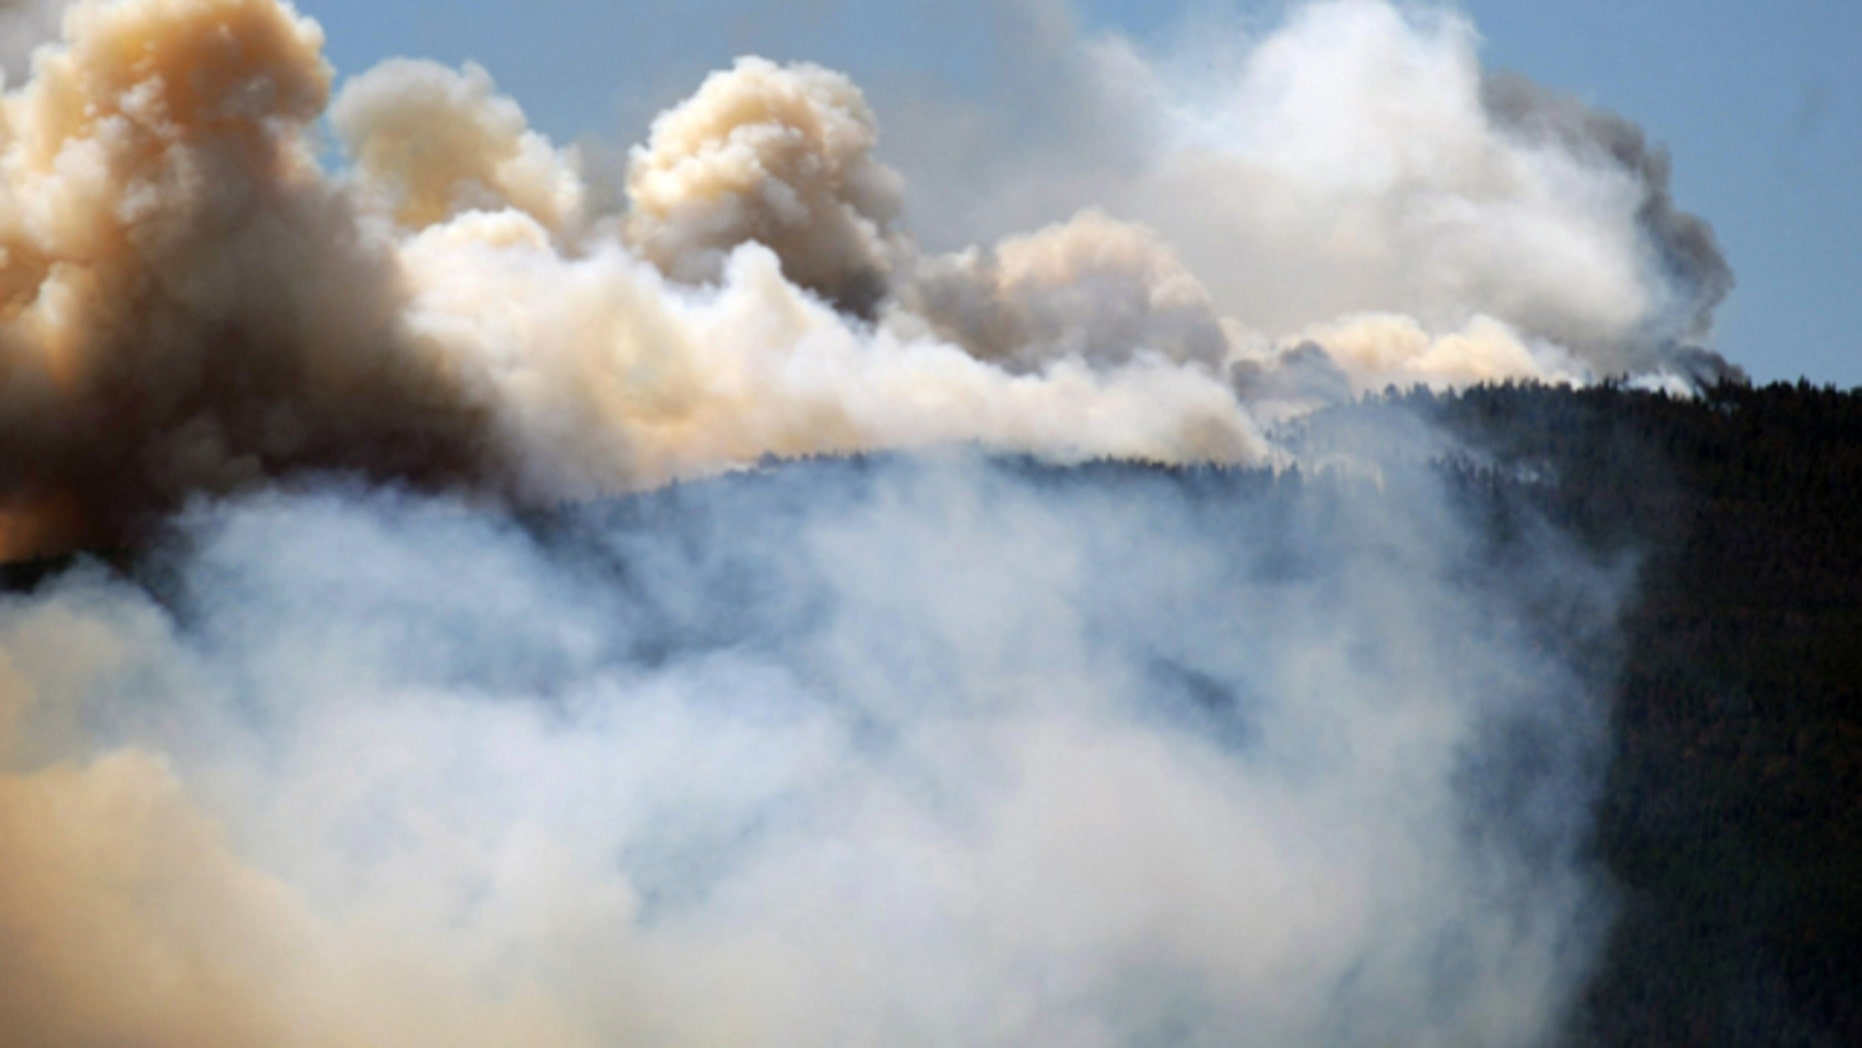 June 12, 2012: Smoke billows from a wildfire burning west of Fort Collins, Colo.